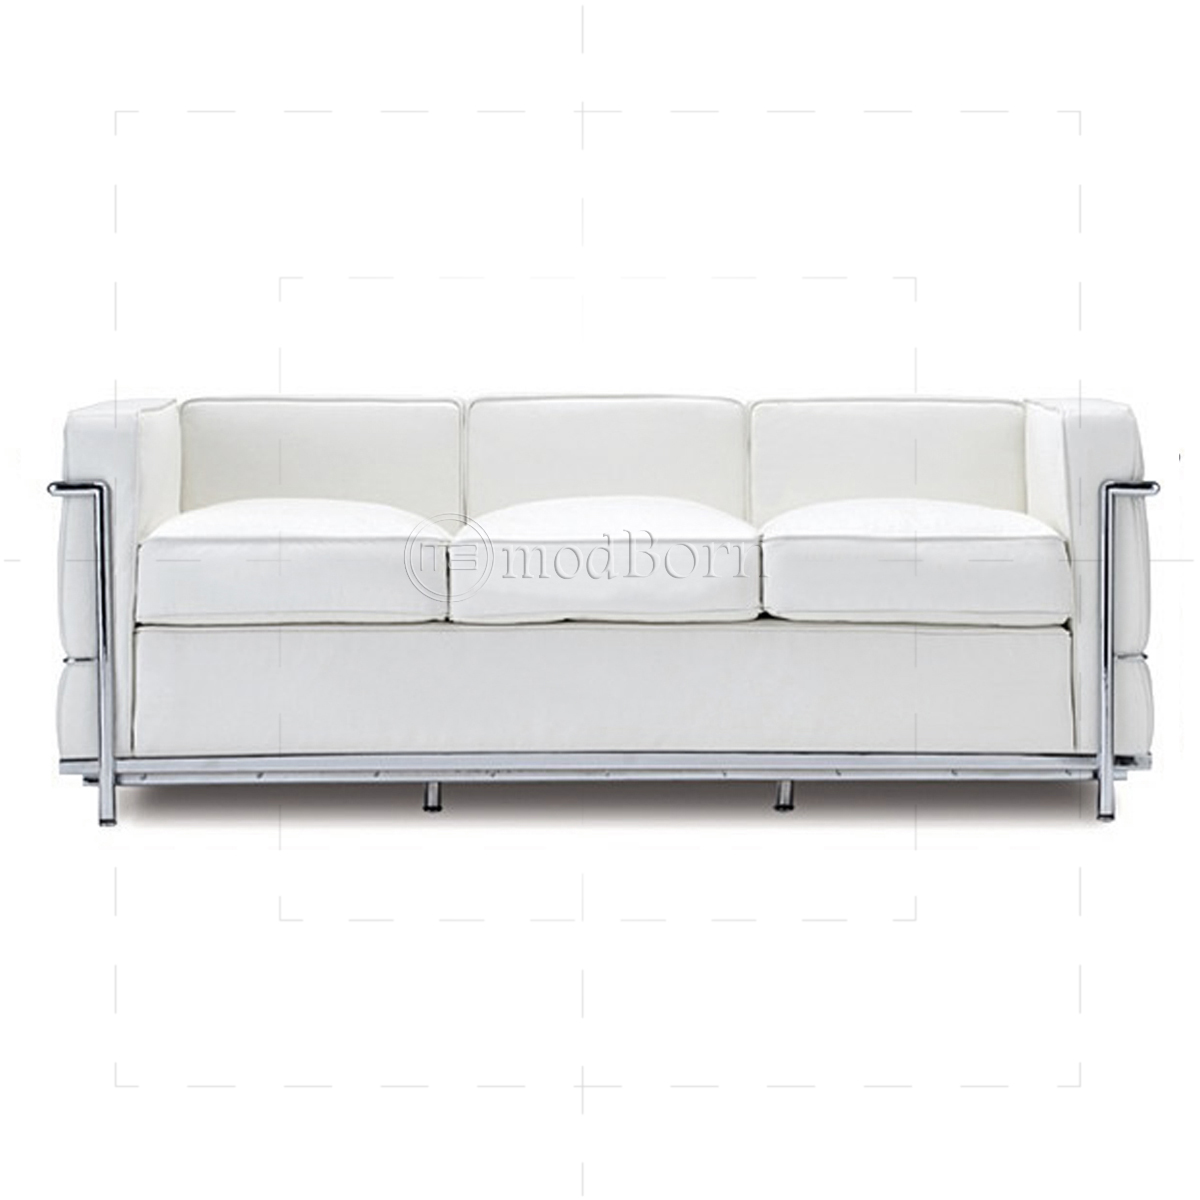 Le corbusier style lc2 sofa 3 seater white leather replica for Le corbusier sofa